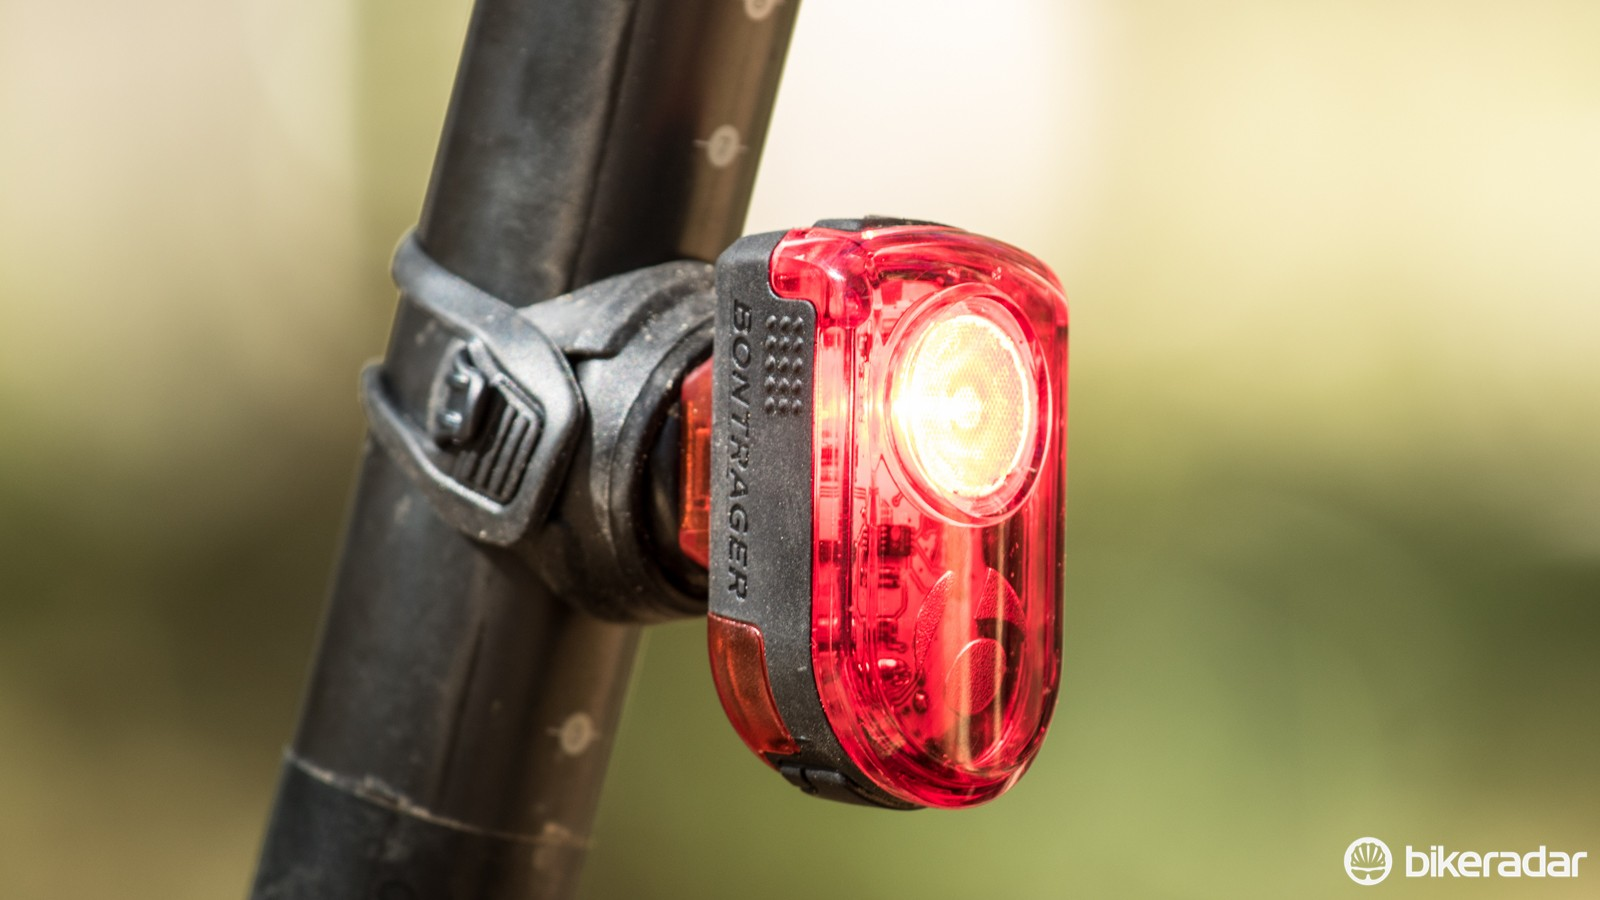 The Bontrager Flare R rear light is for use both day and night